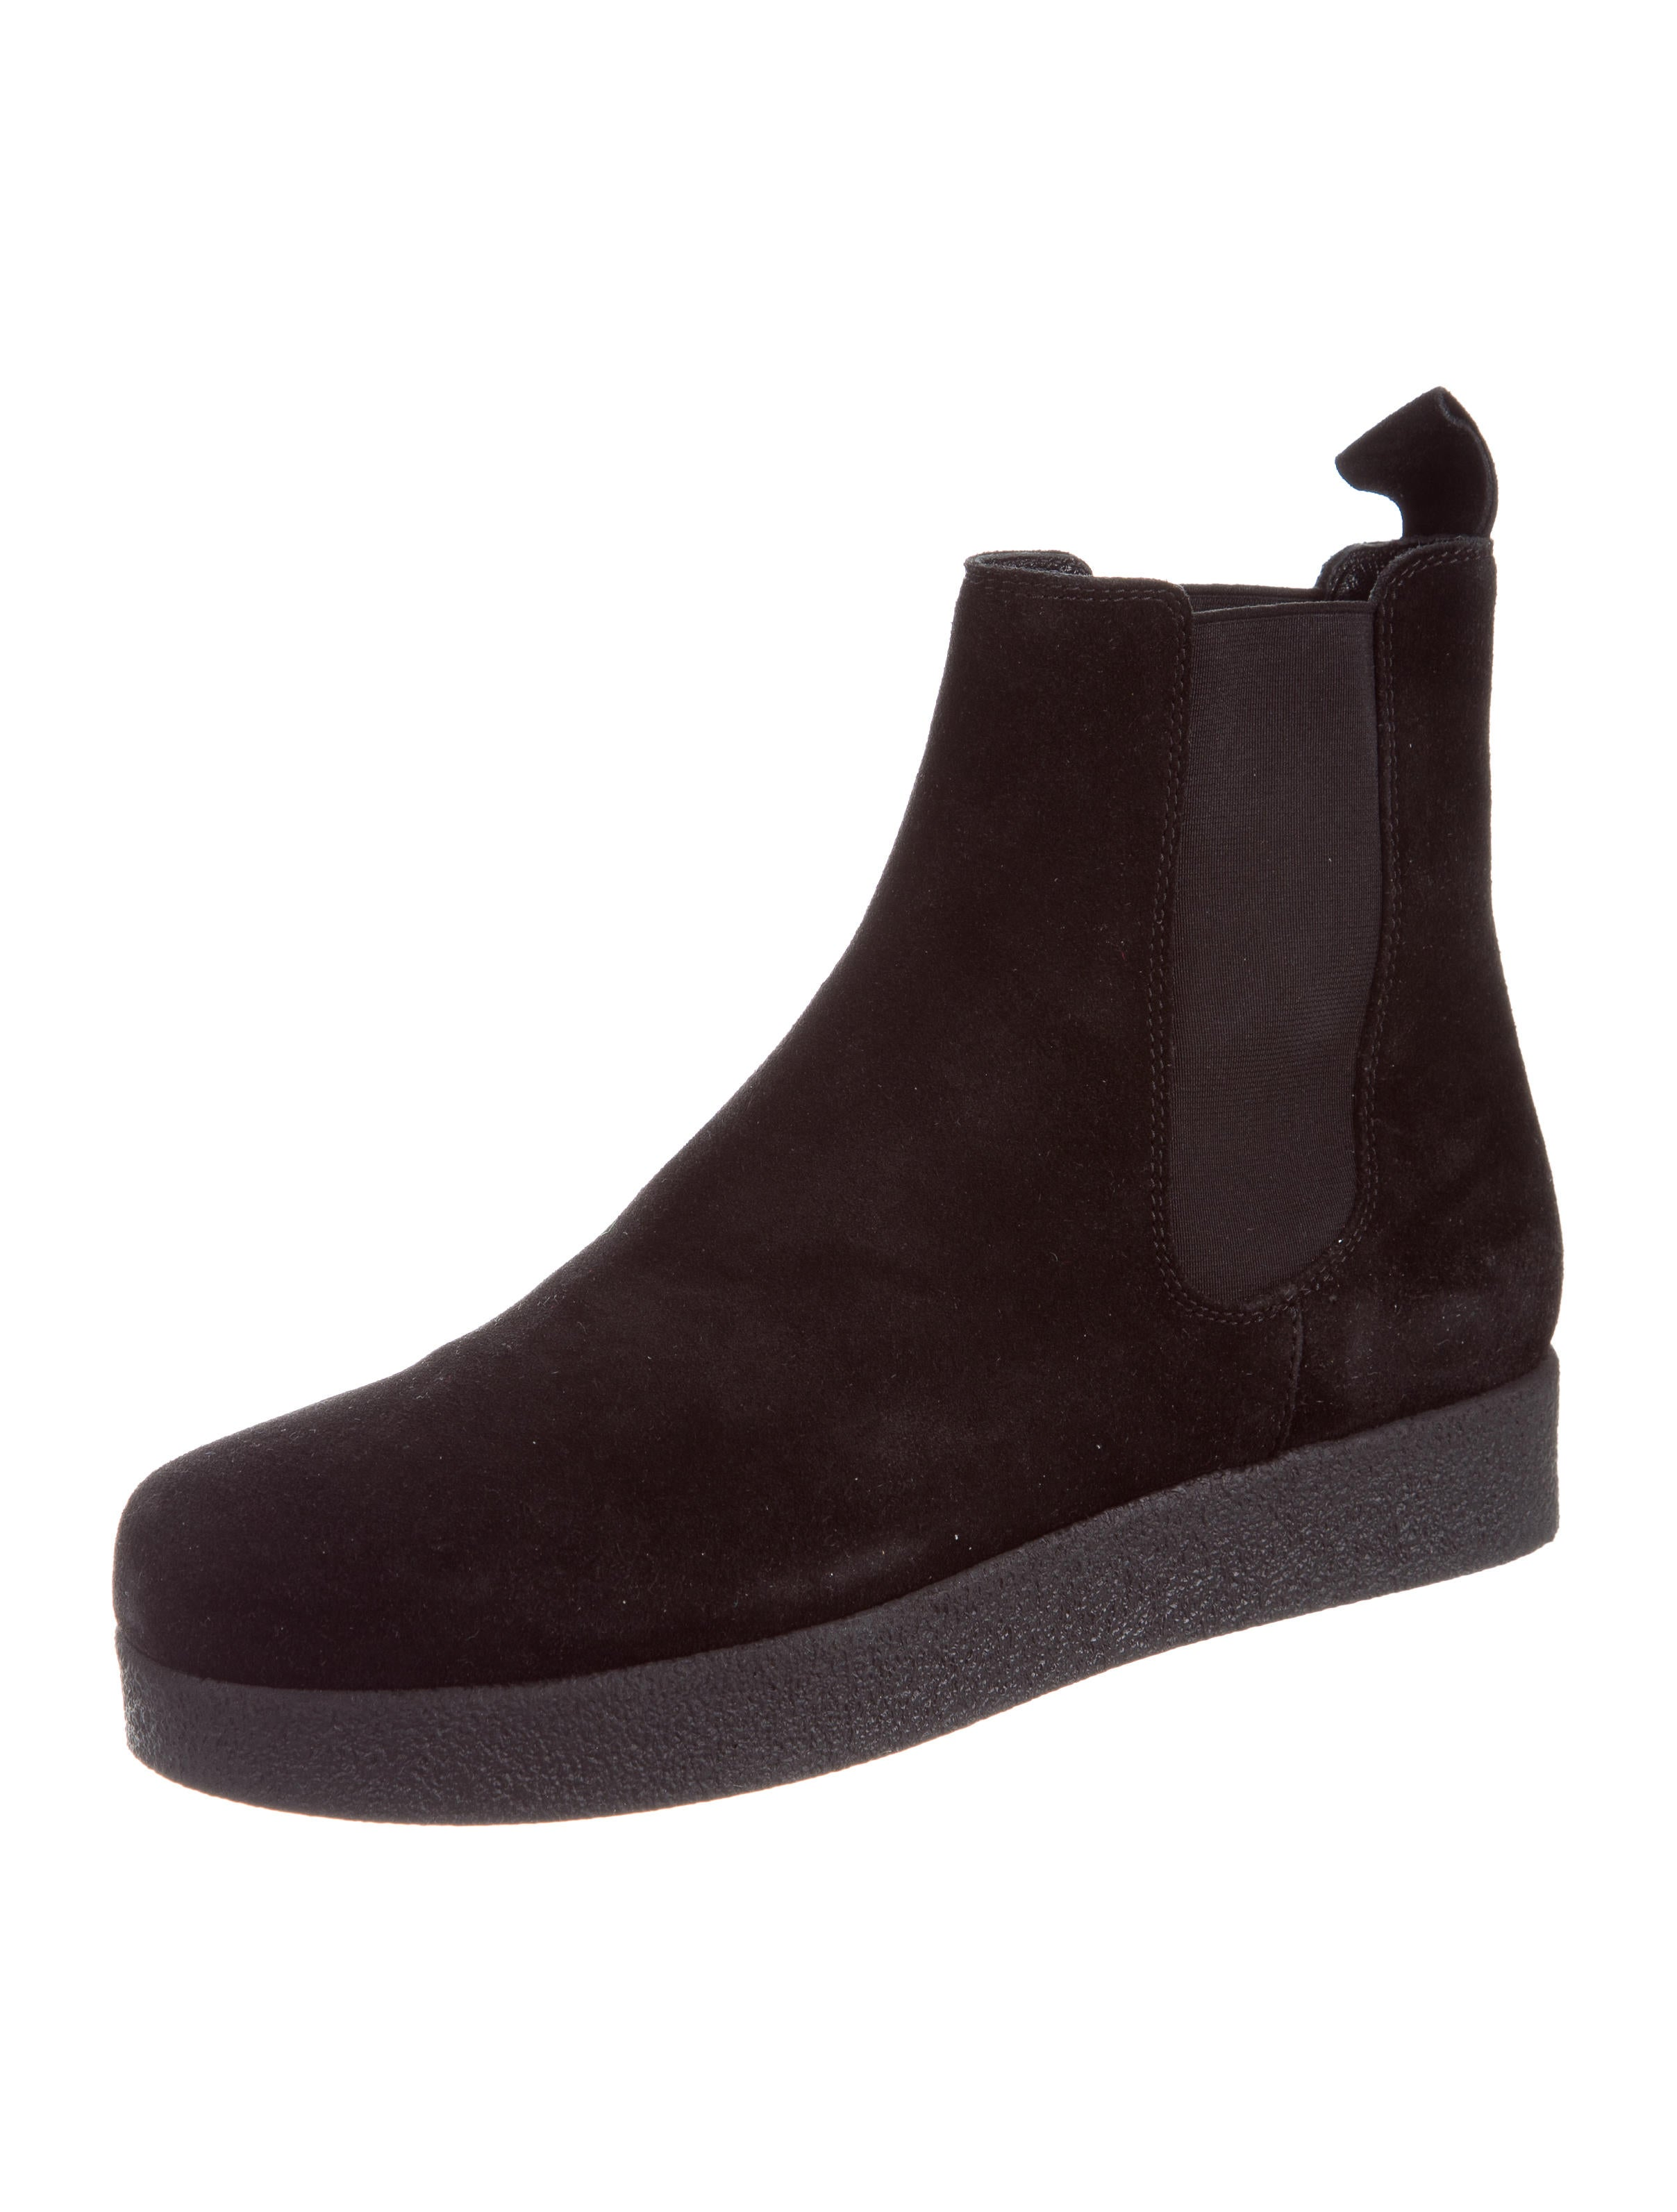 barney s flatform ankle boots shoes bar20416 the